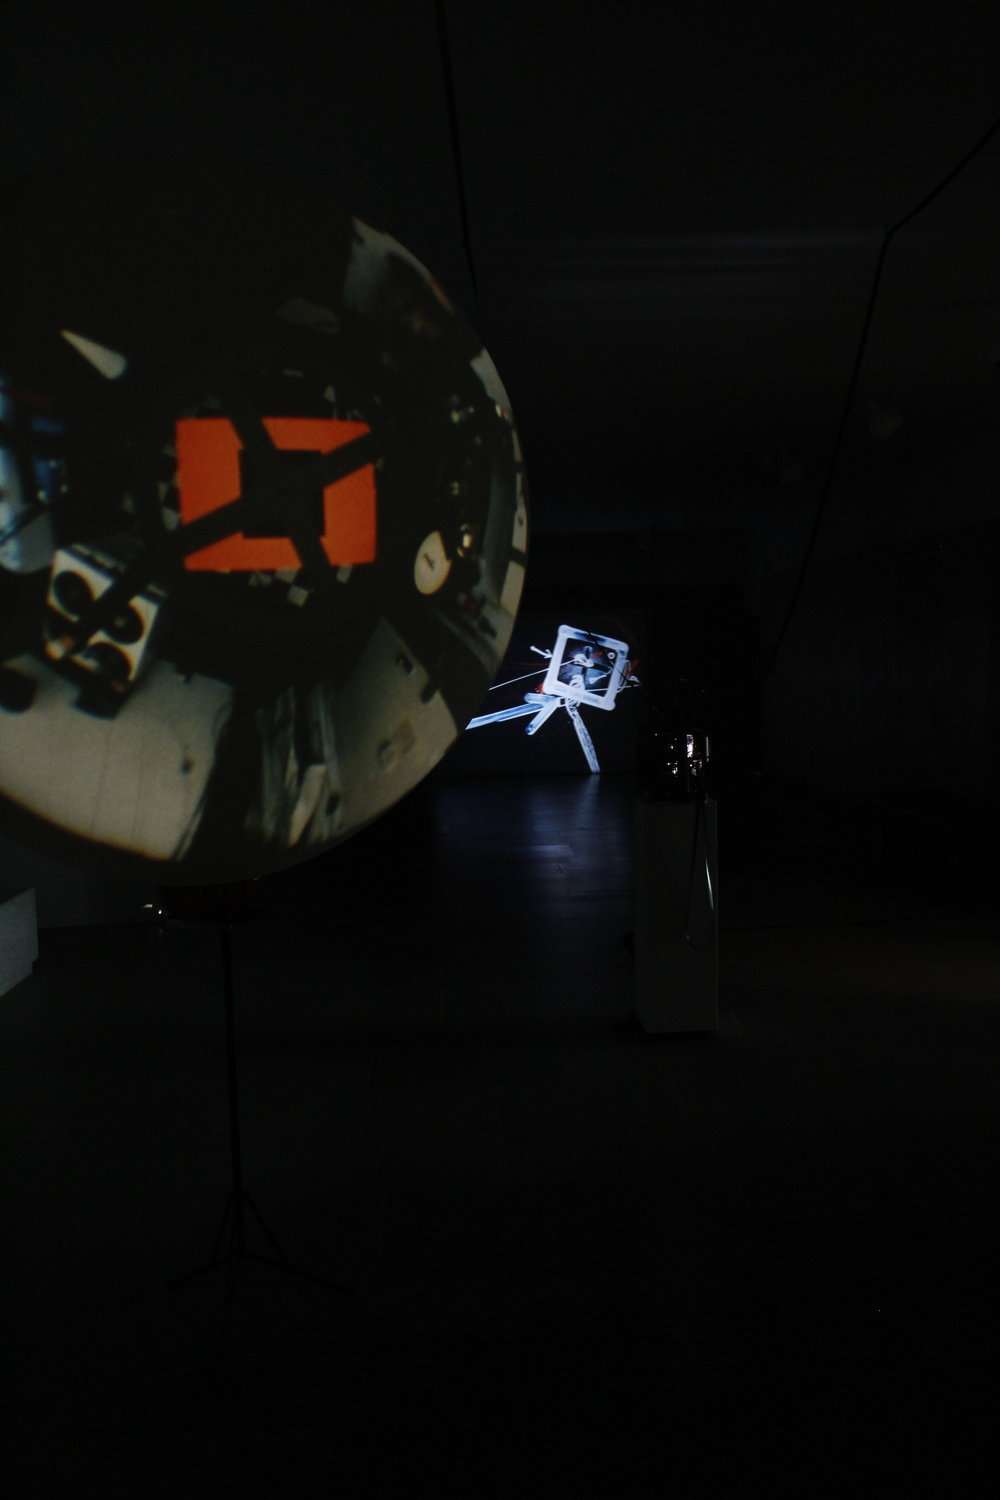 Klaus Lutz   Vulcan , 2004 and  Acrobatics , 1996 (from left to right)  16mm color films, Silent  Courtesy: The Estate of Klaus Lutz  Photo: Rebecca J. Squires   September 5, 2017